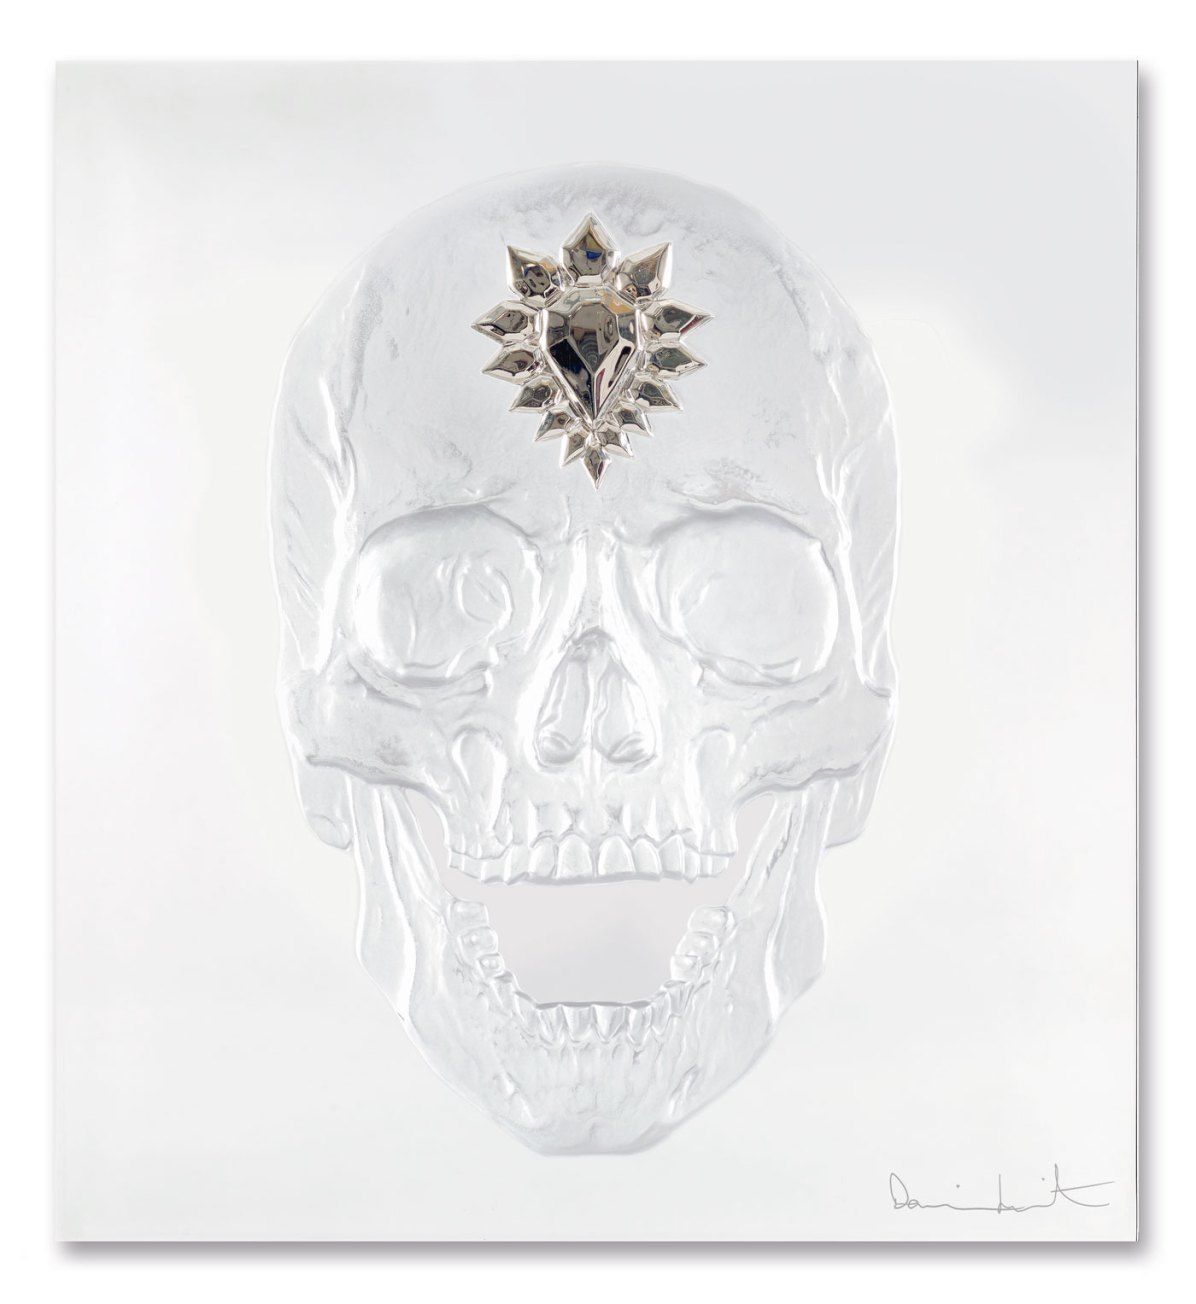 HD-88059104-ETERNAL-MEMENTO-Clear-and-Platinum-Photo-François-Fernandez-©-Damien-Hirst-Science-Ltd-and-Lalique